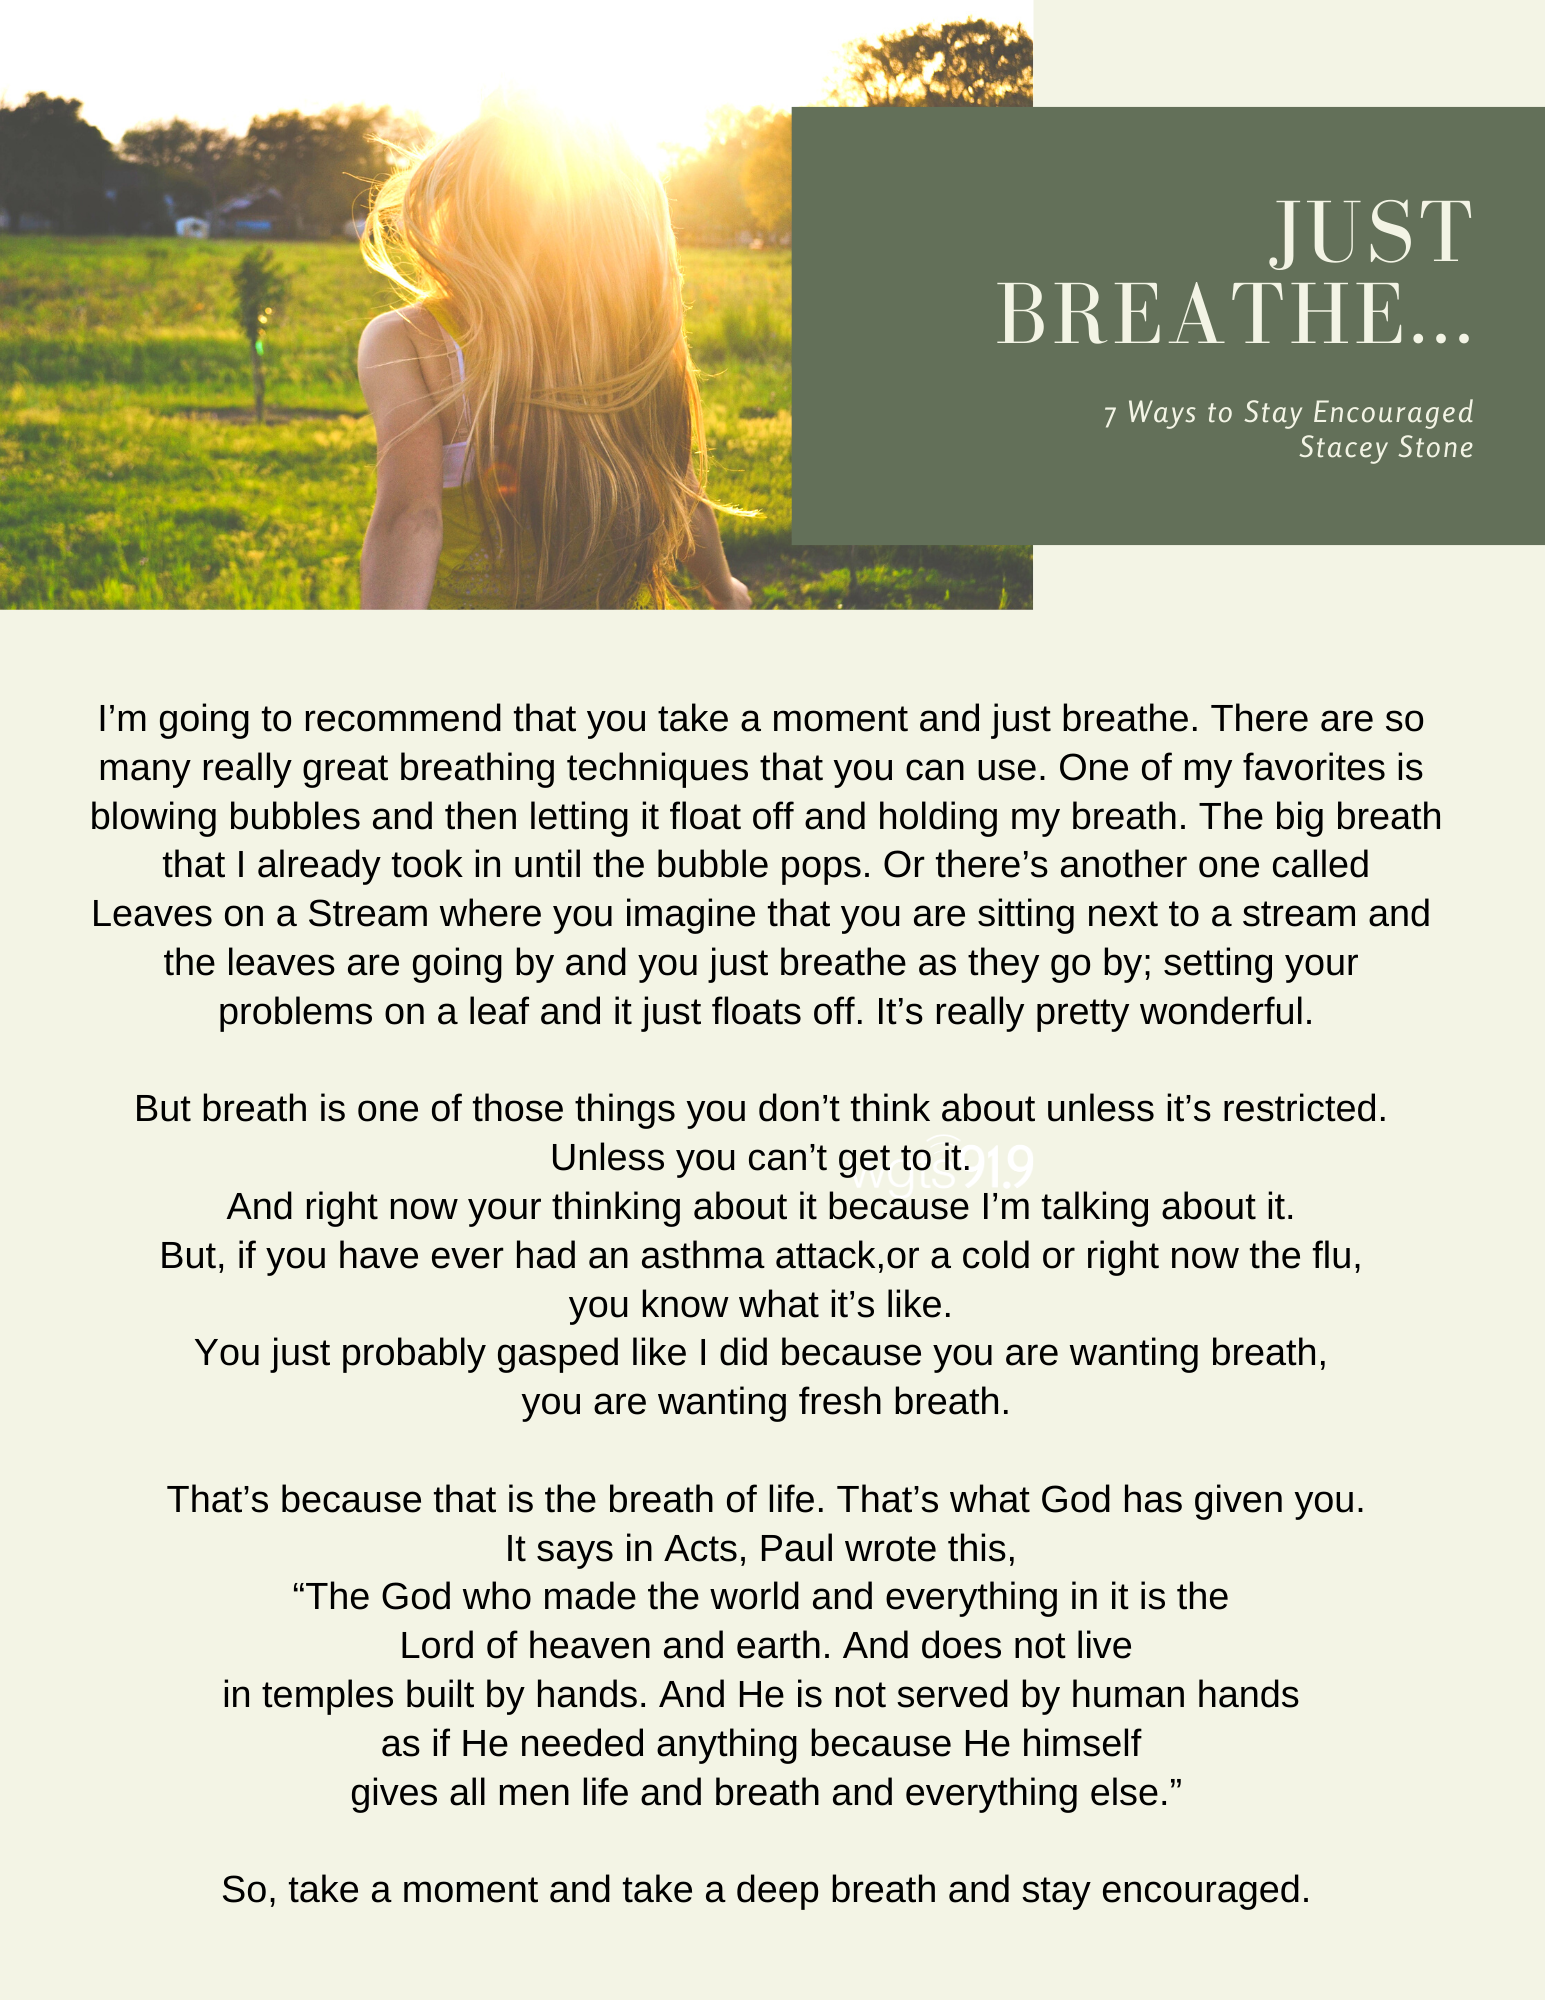 just breathe - 7 ways to stay encouraged transcript